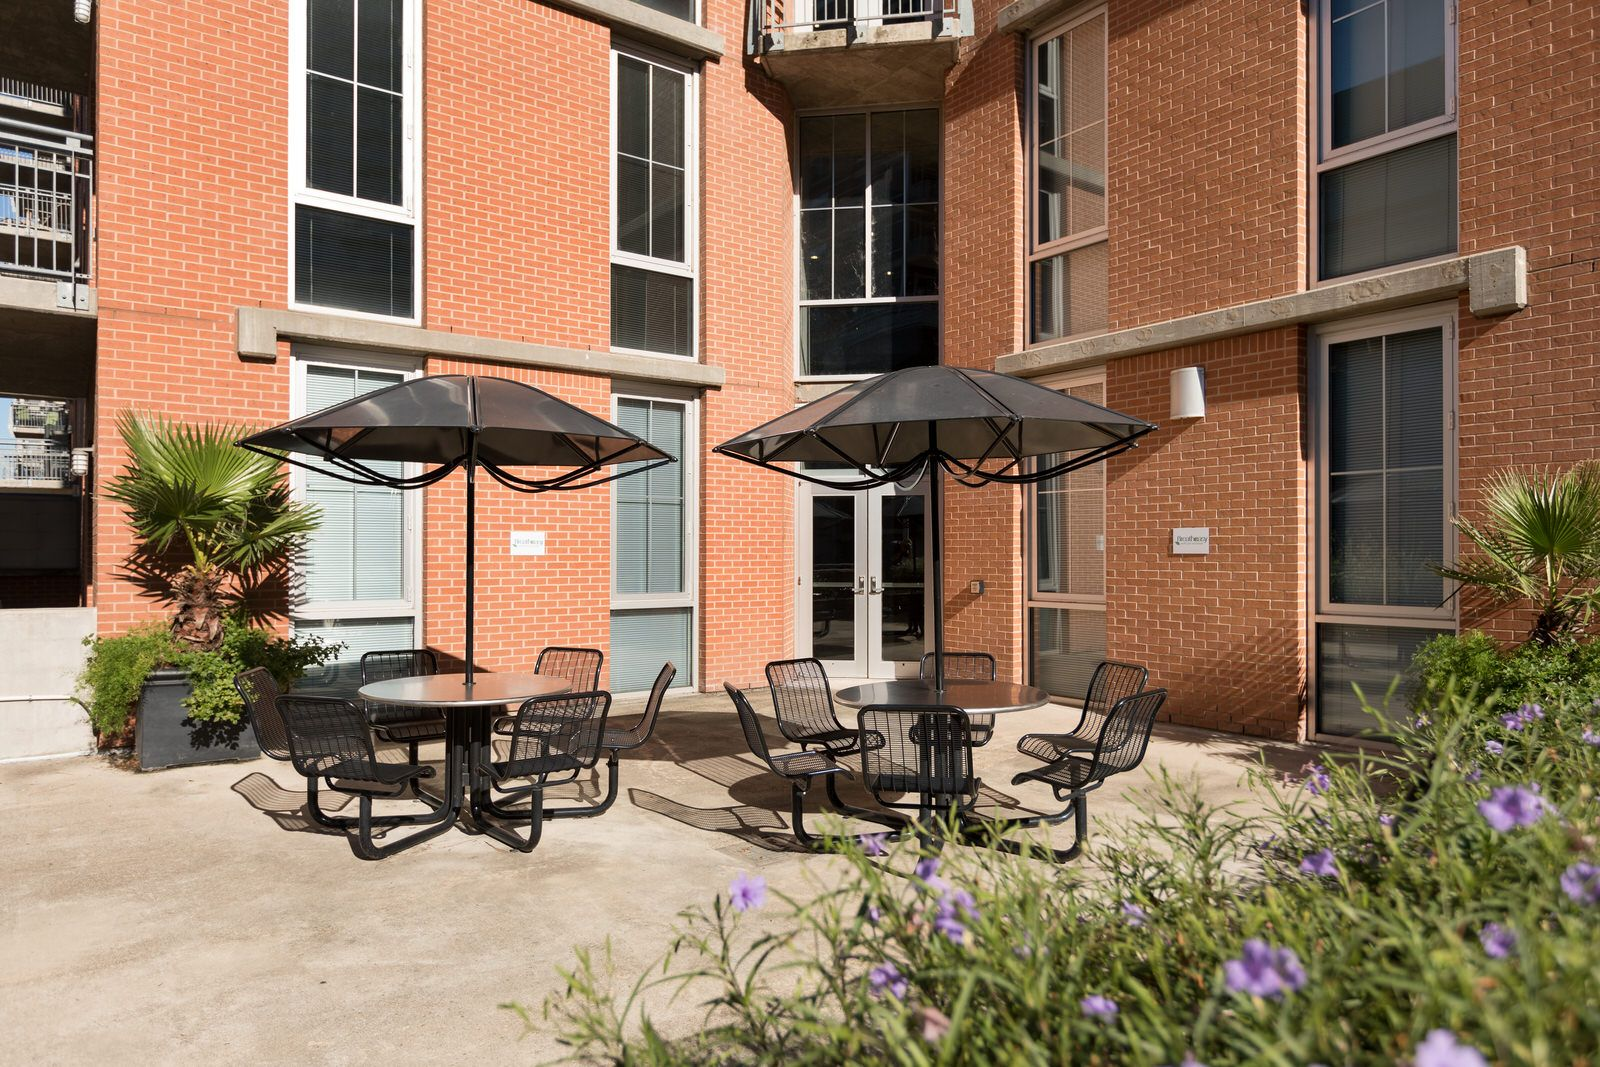 The courtyard is the perfect place to get stake out a spot